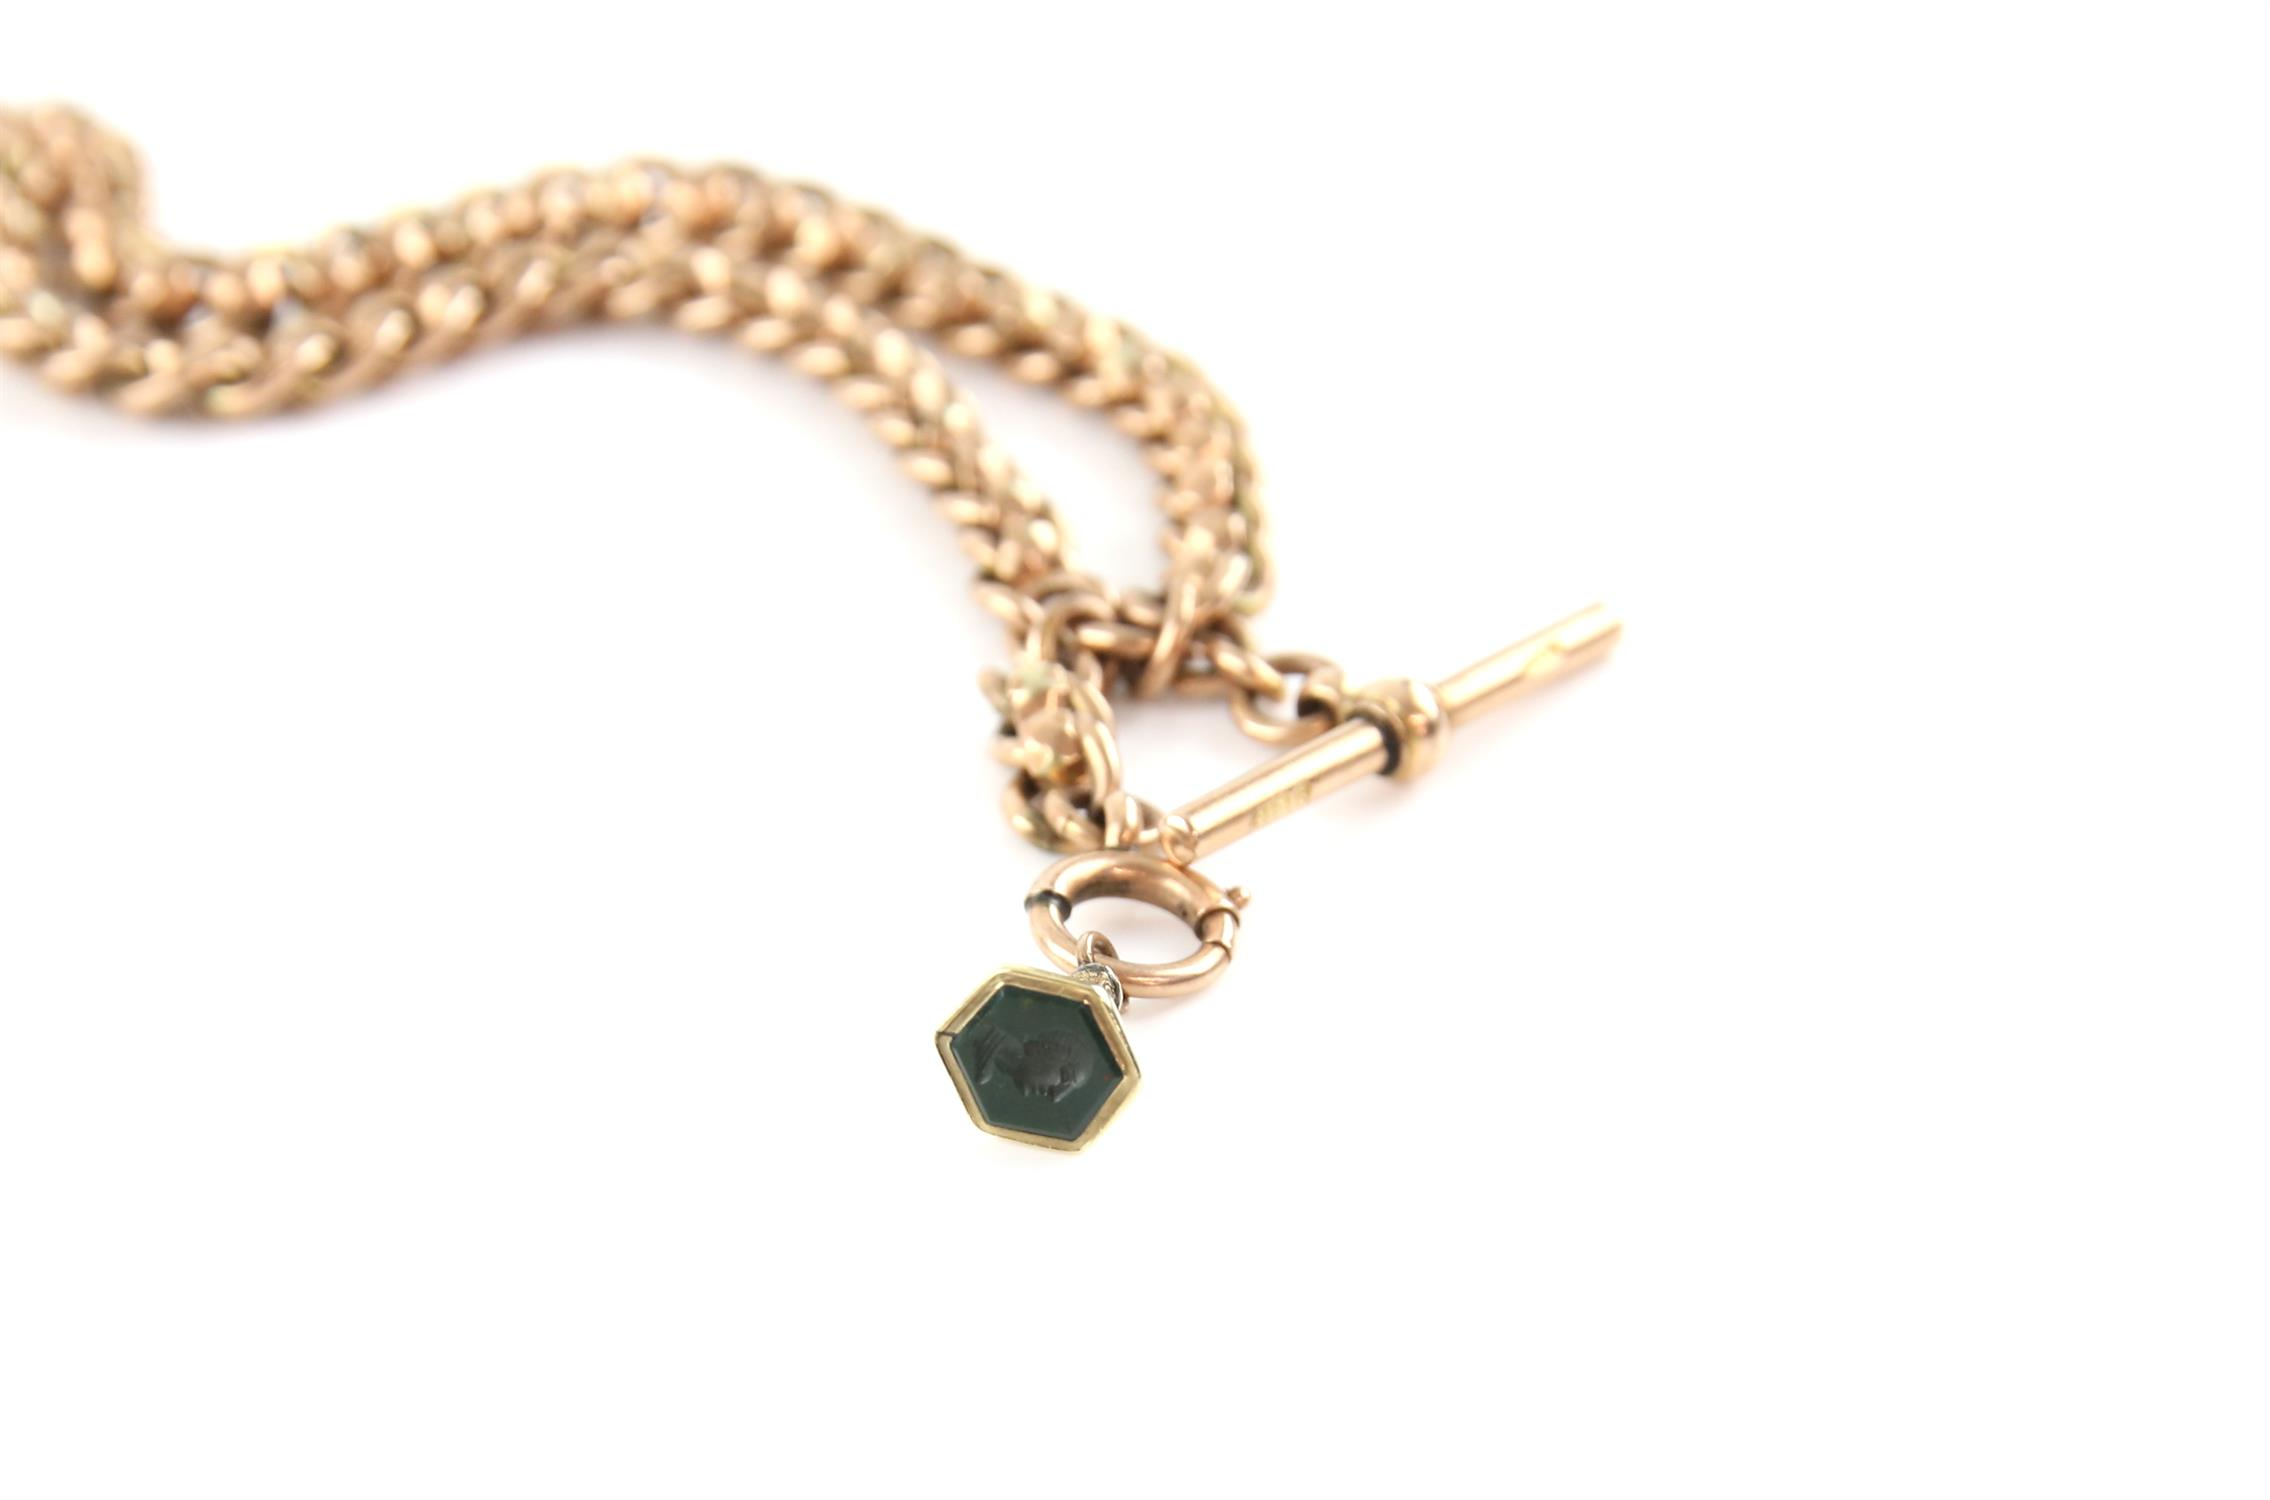 Early 20th Century Albert chain with fancy faceted links, two swivel clasps, t-bar and small - Image 2 of 2